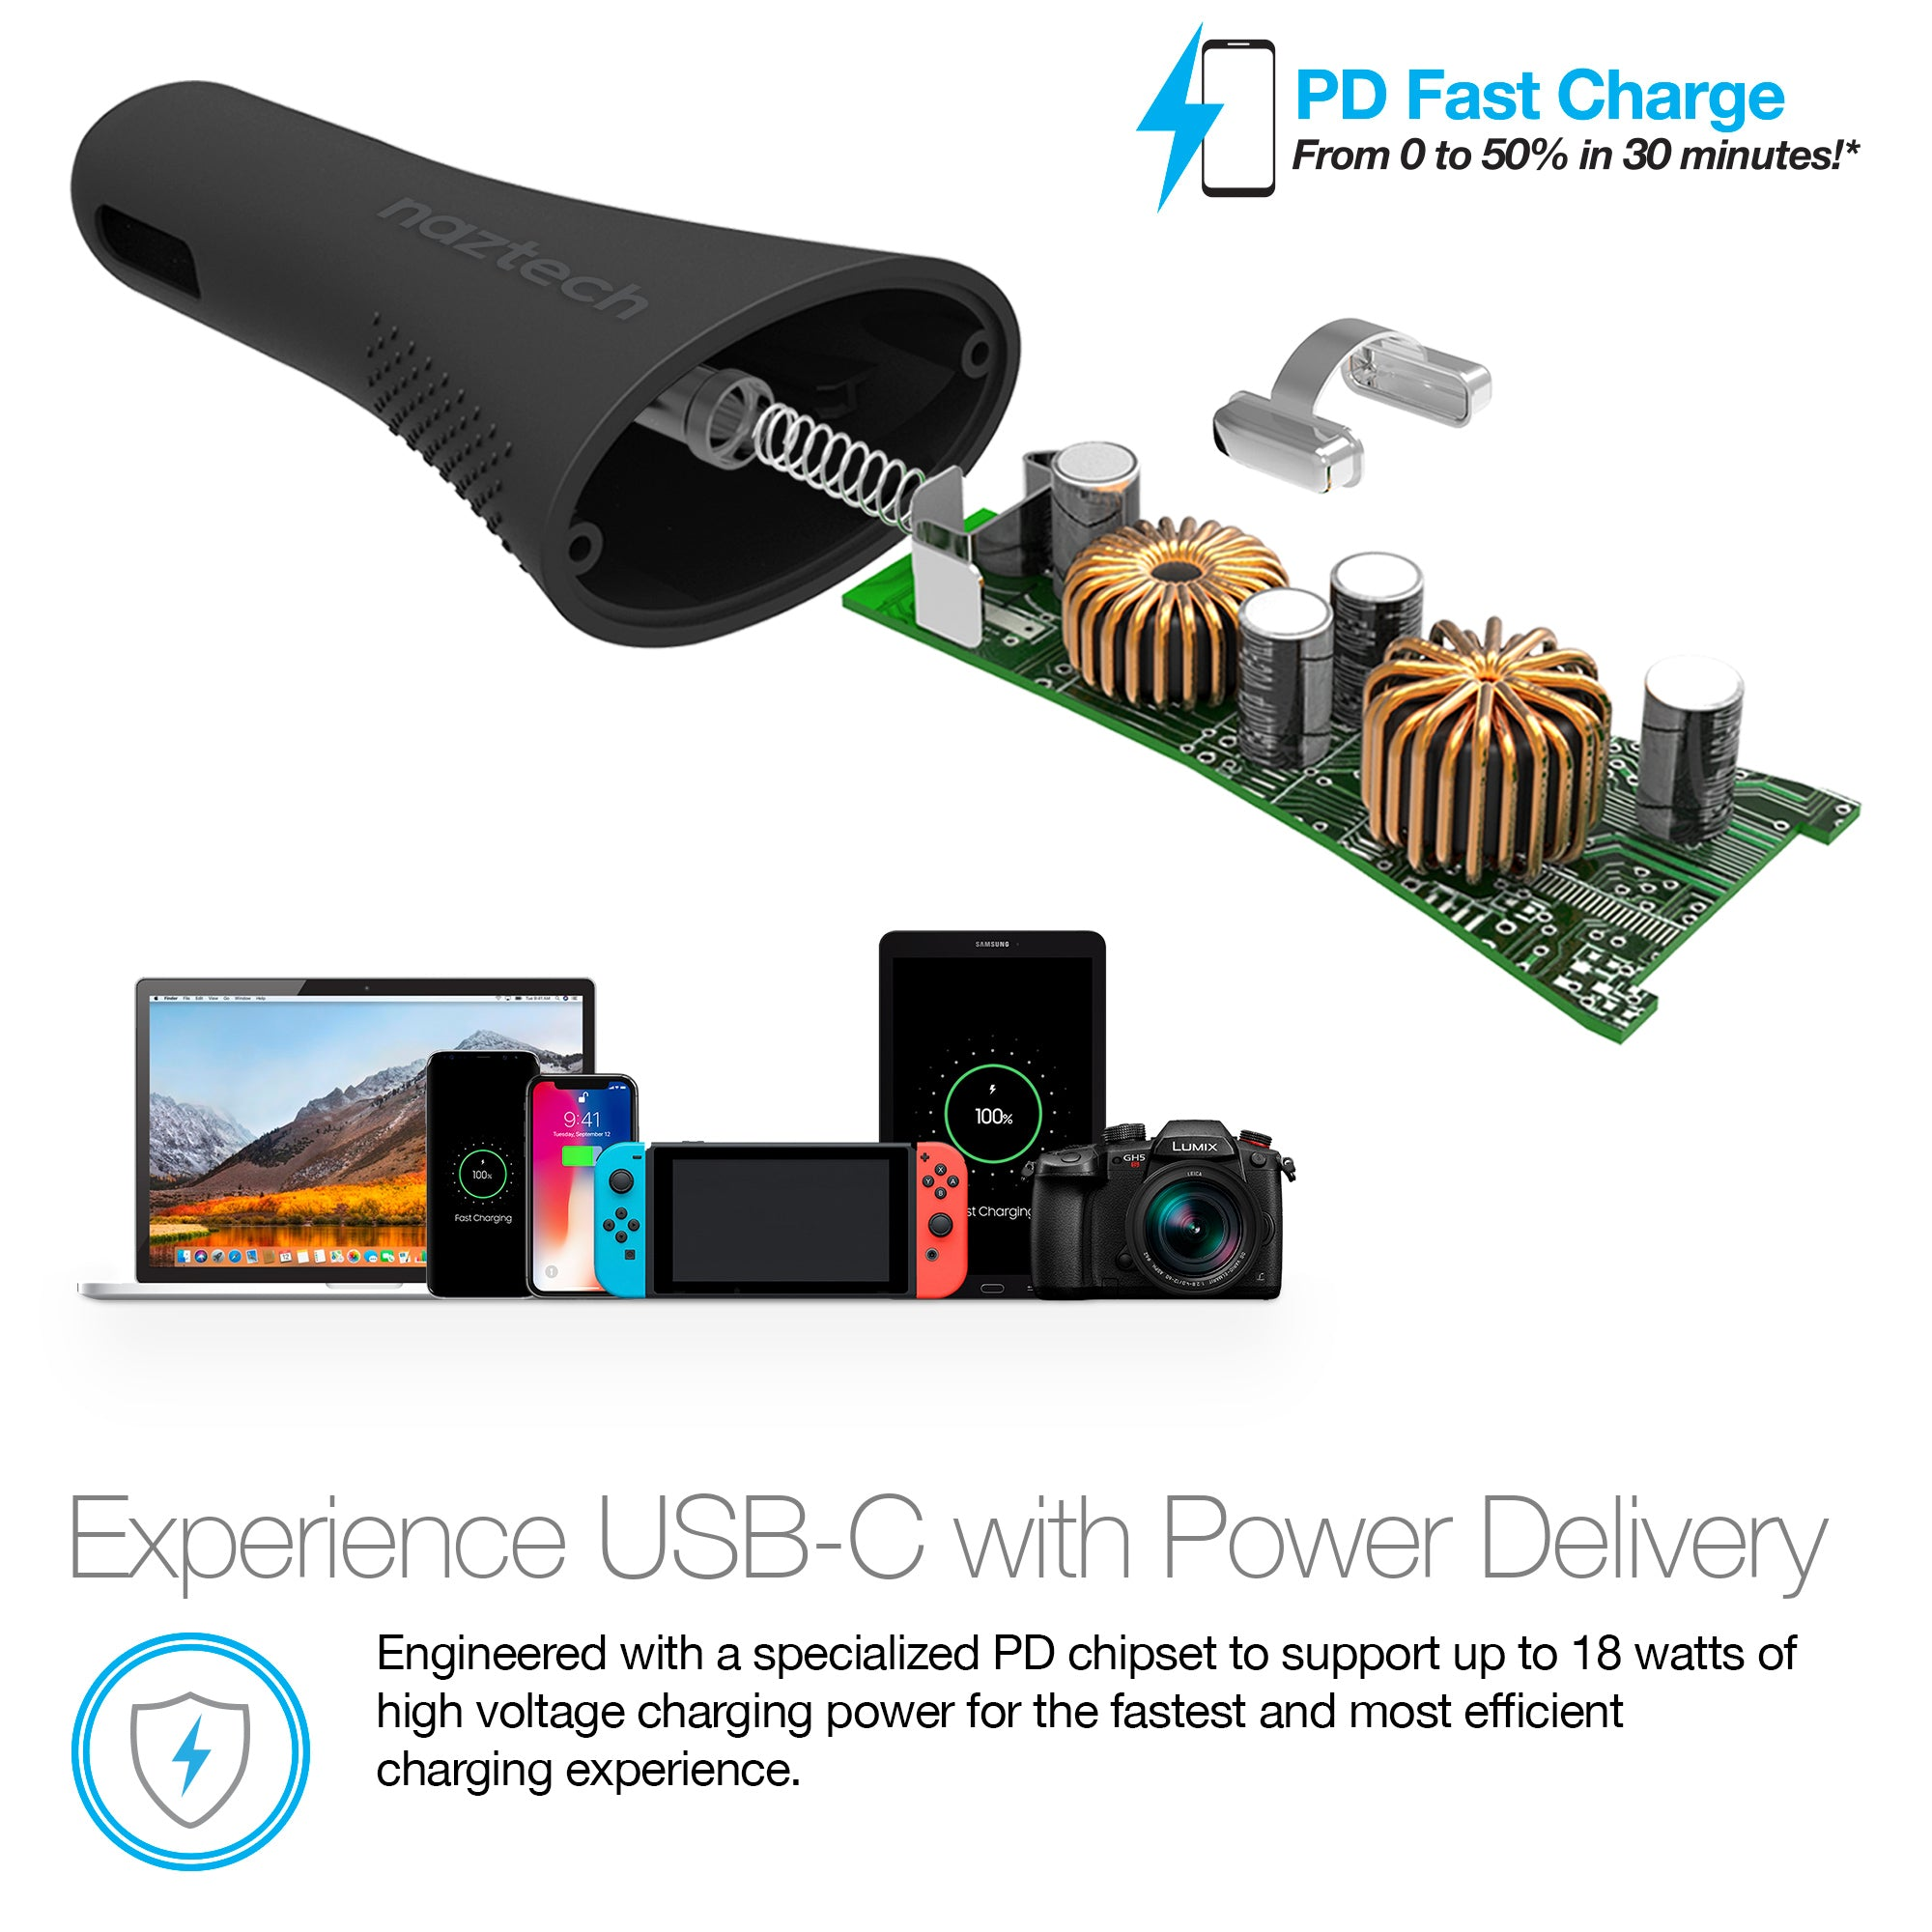 18W Power T3 Xtreme USB-C Power Delivery + Adaptive Fast Charge